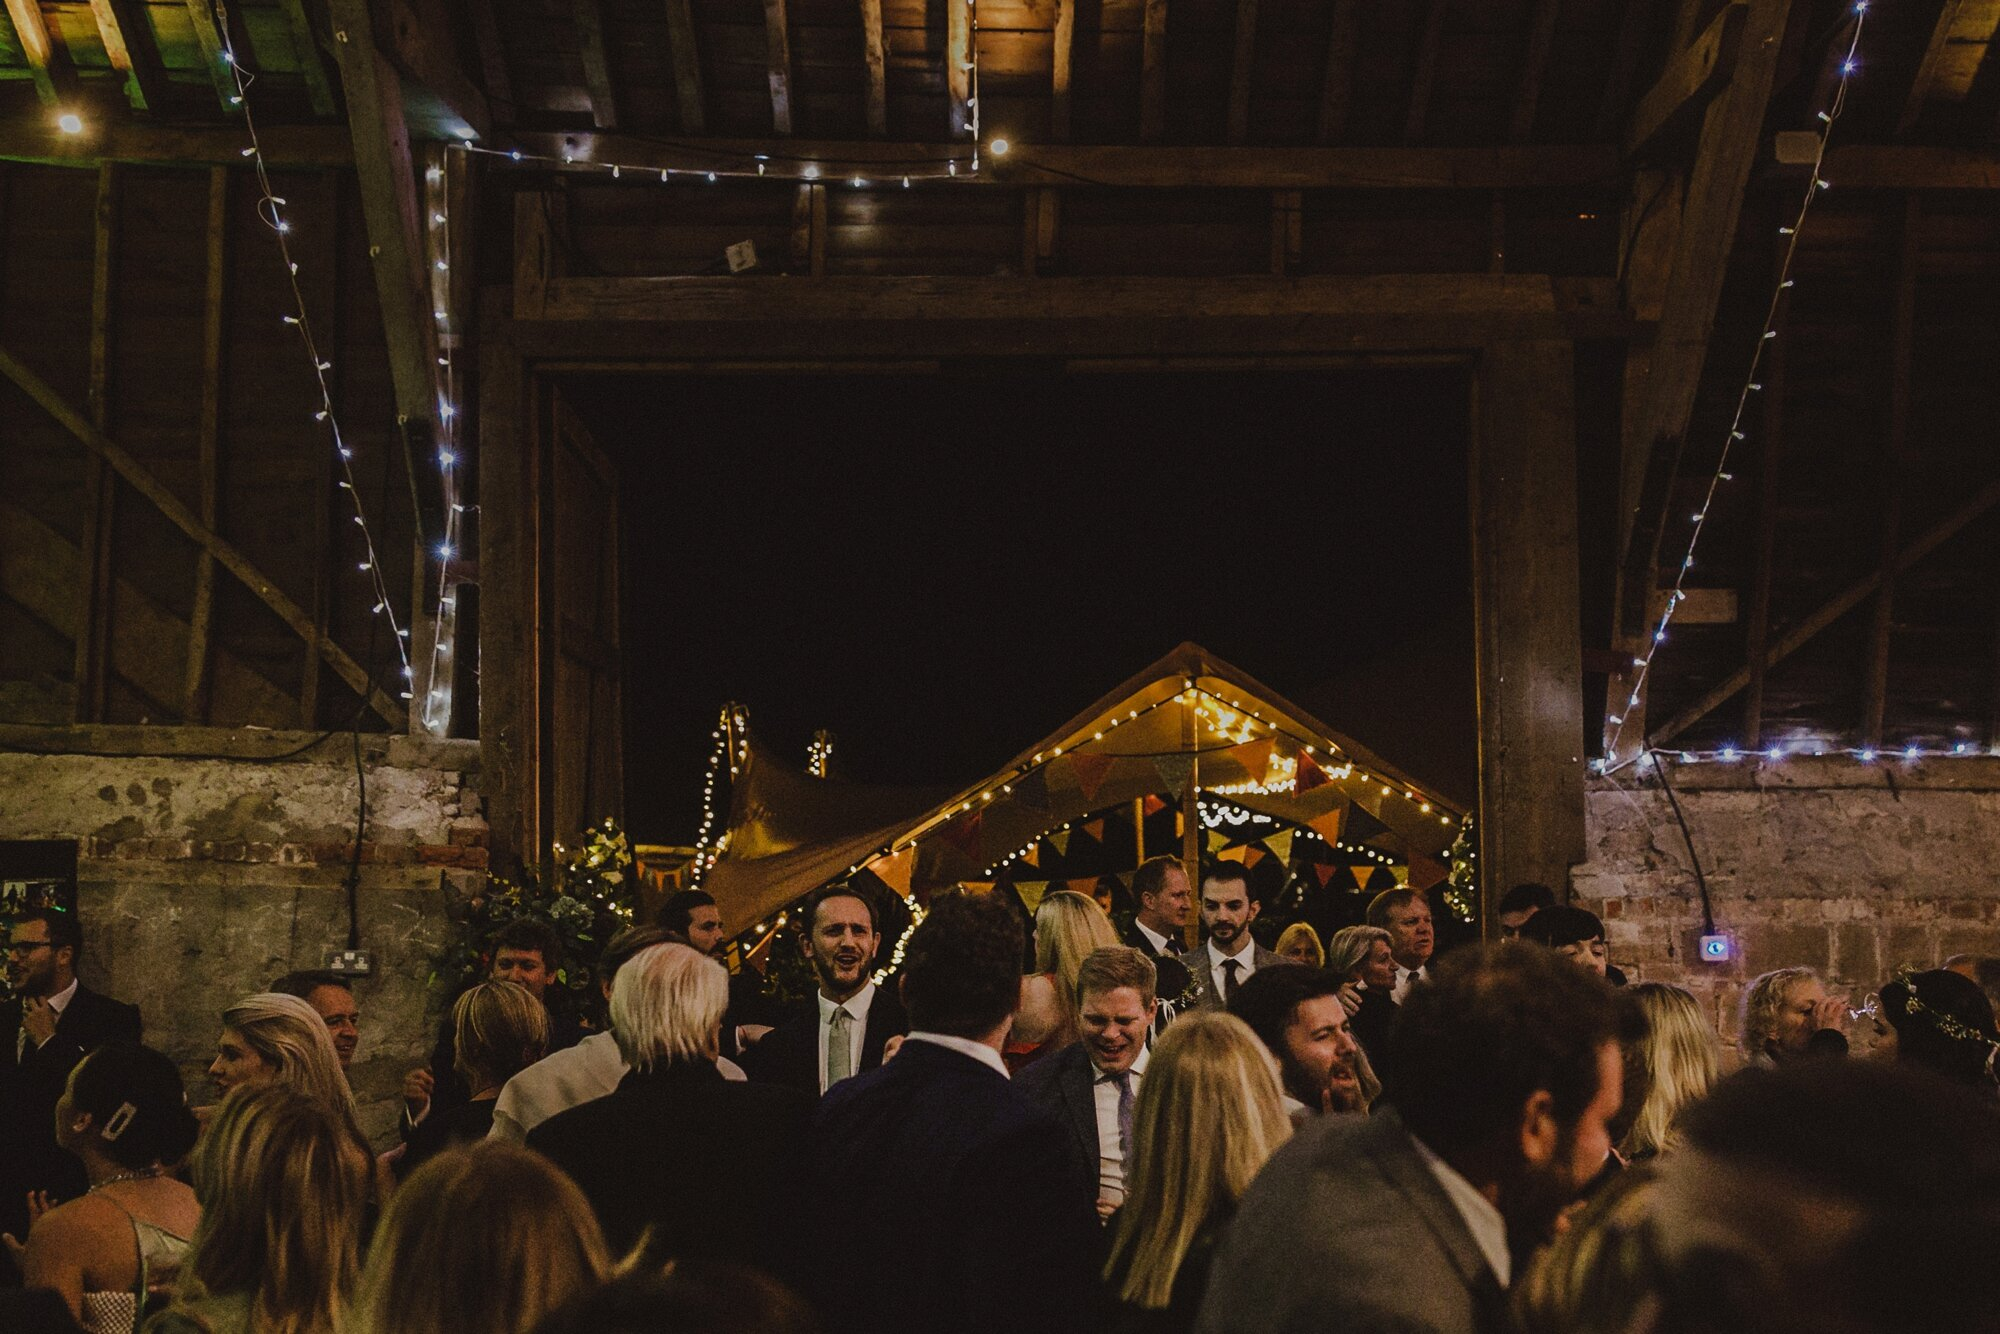 wick-bottom-barn-wedding-wiltshire_0217.jpg